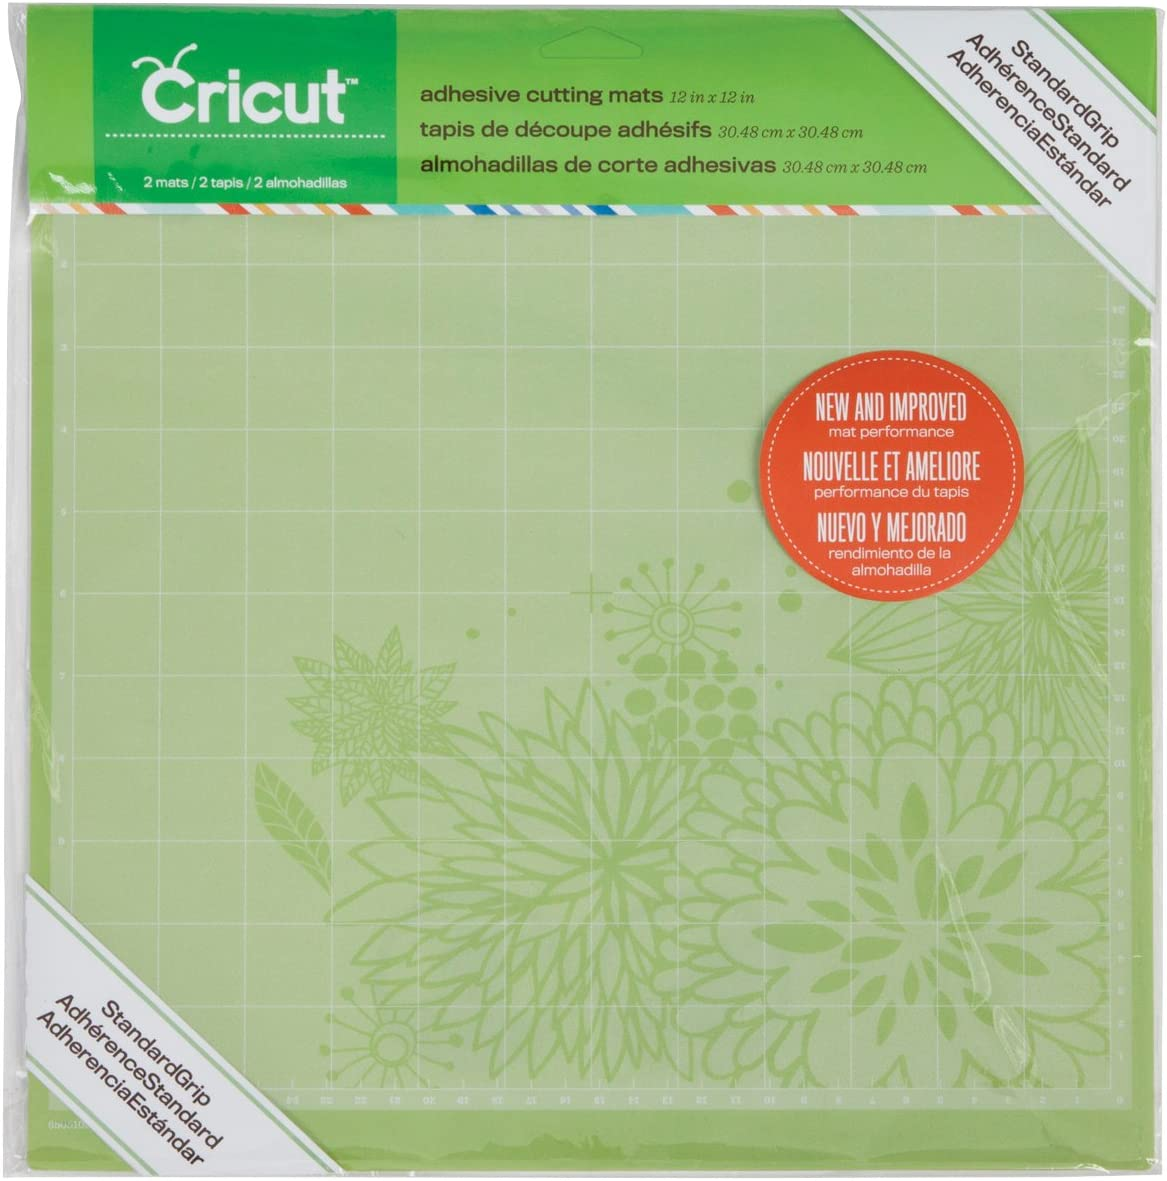 Cricut StandardGrip Cutting Mat for Crafting 6 by 12-Inch 2001972